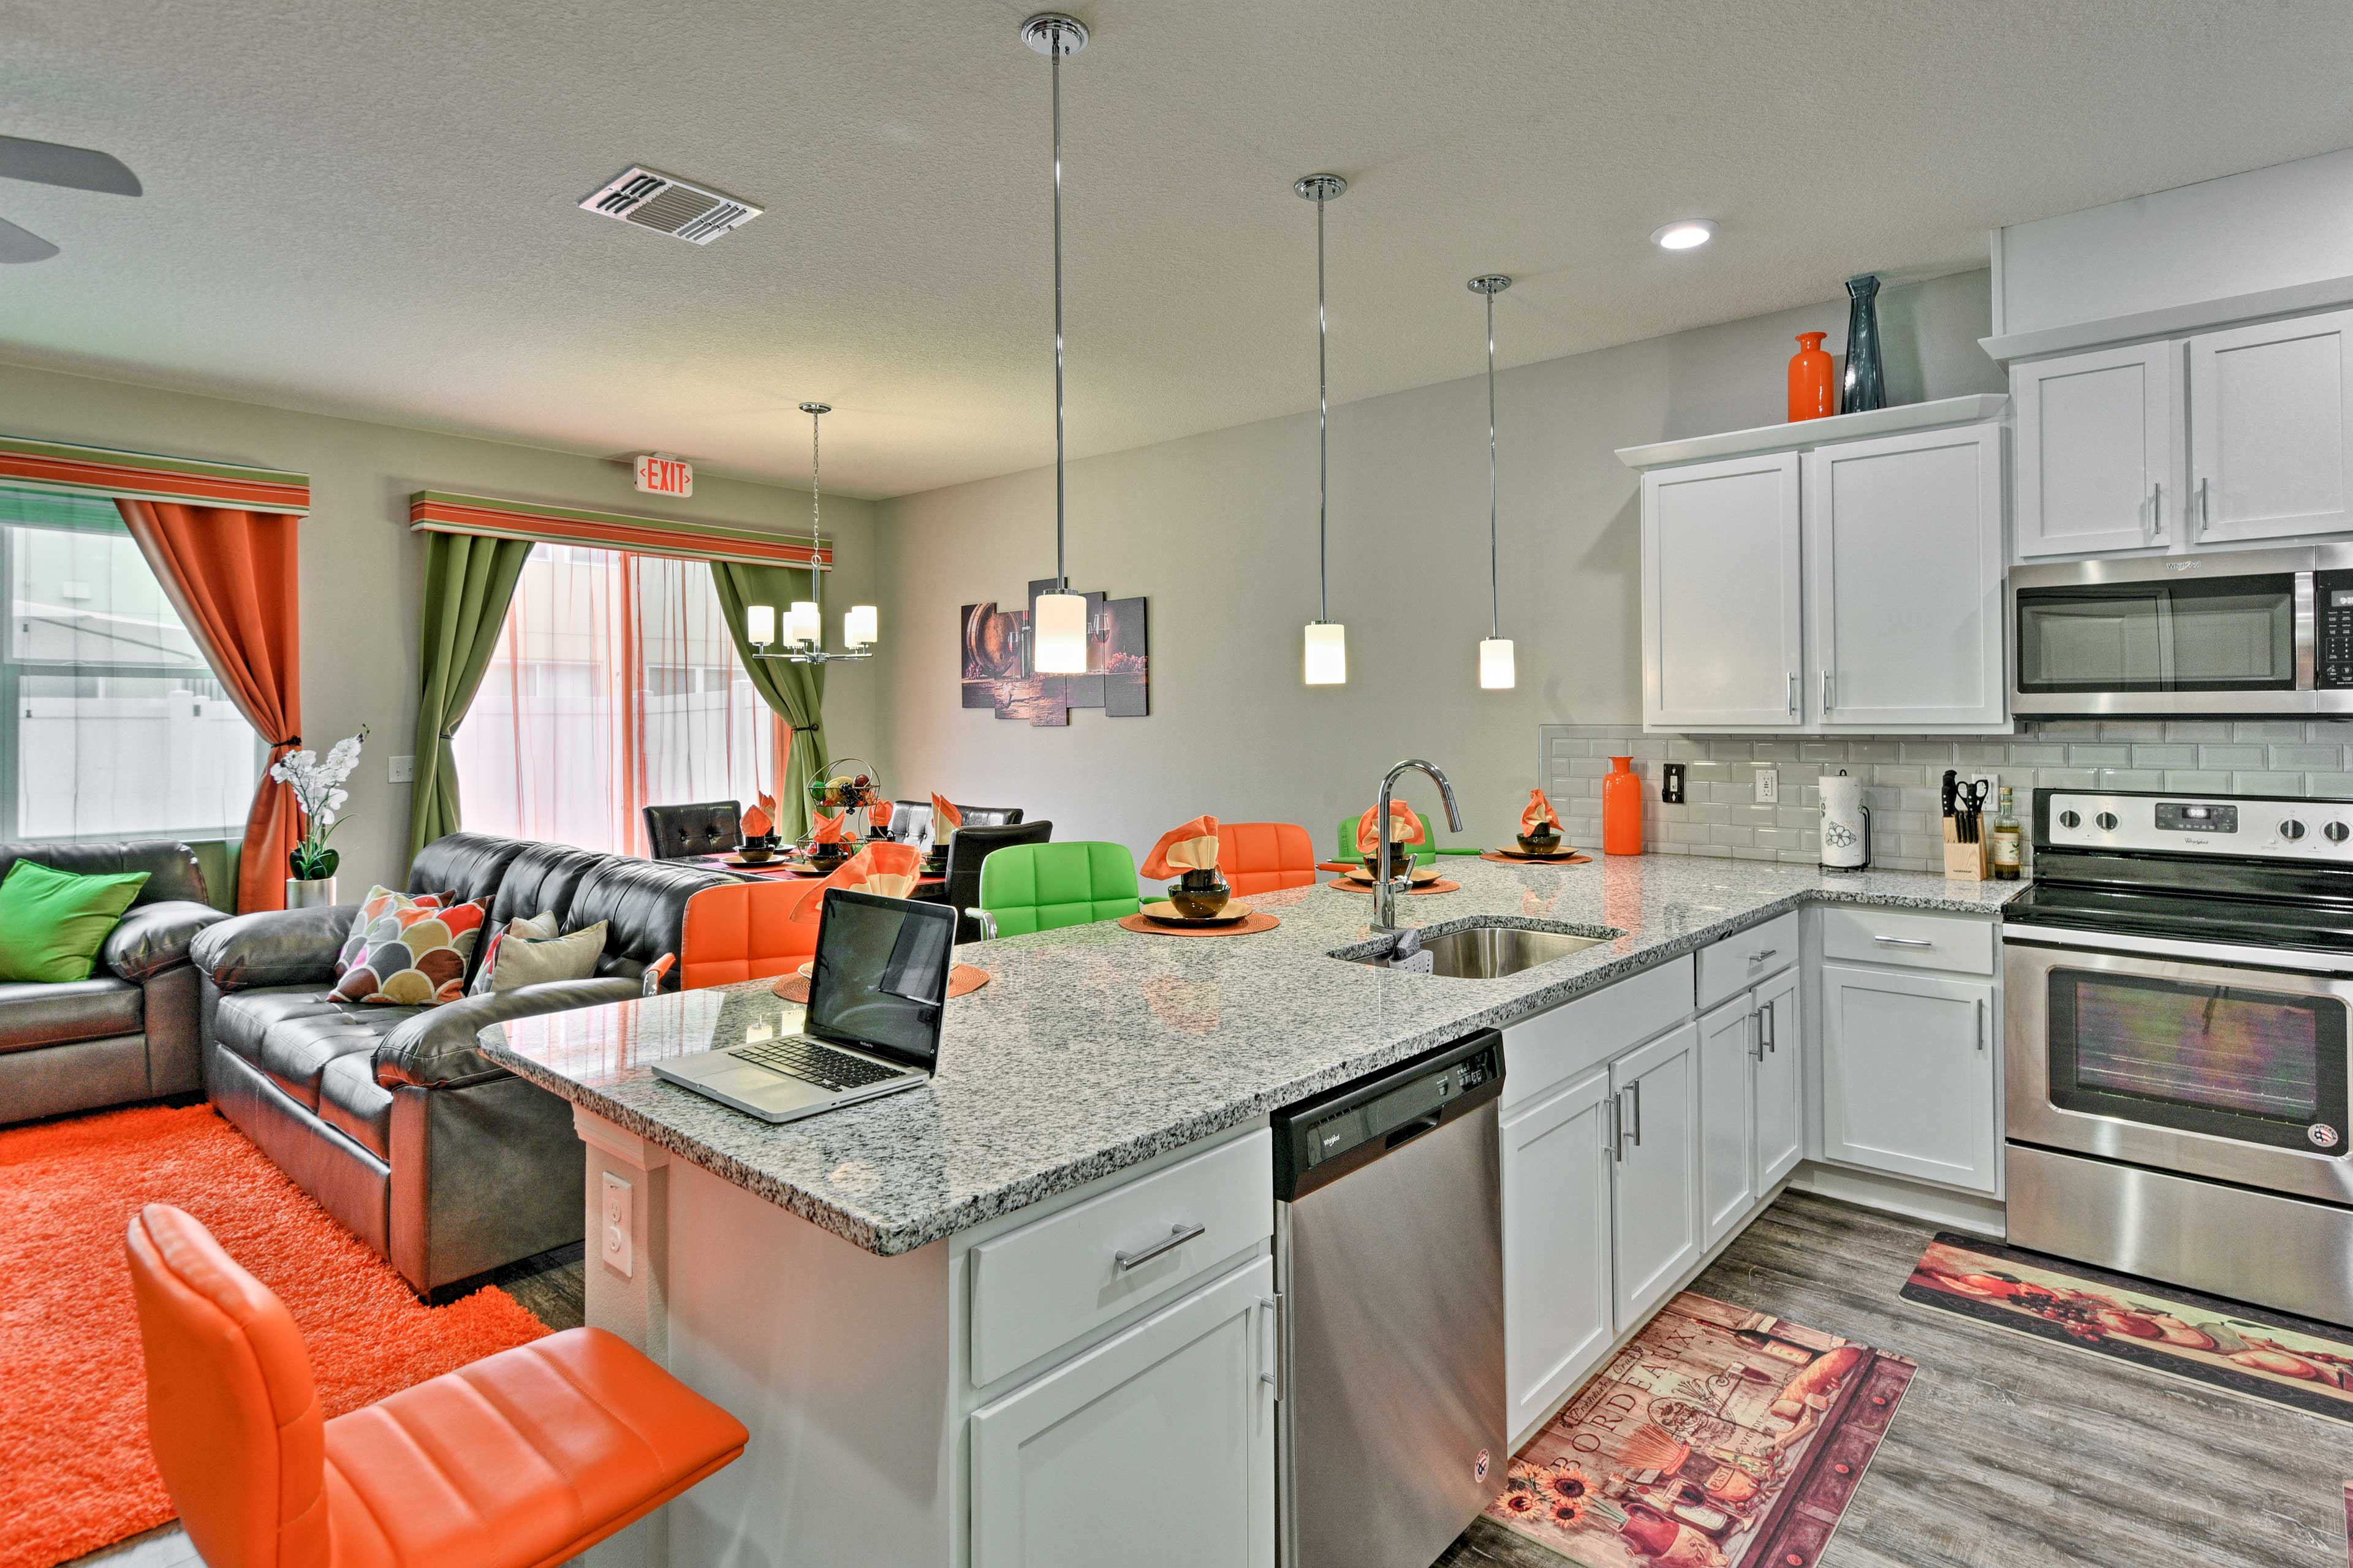 This modern kitchen comes fully equipped with new stainless steel appliances.